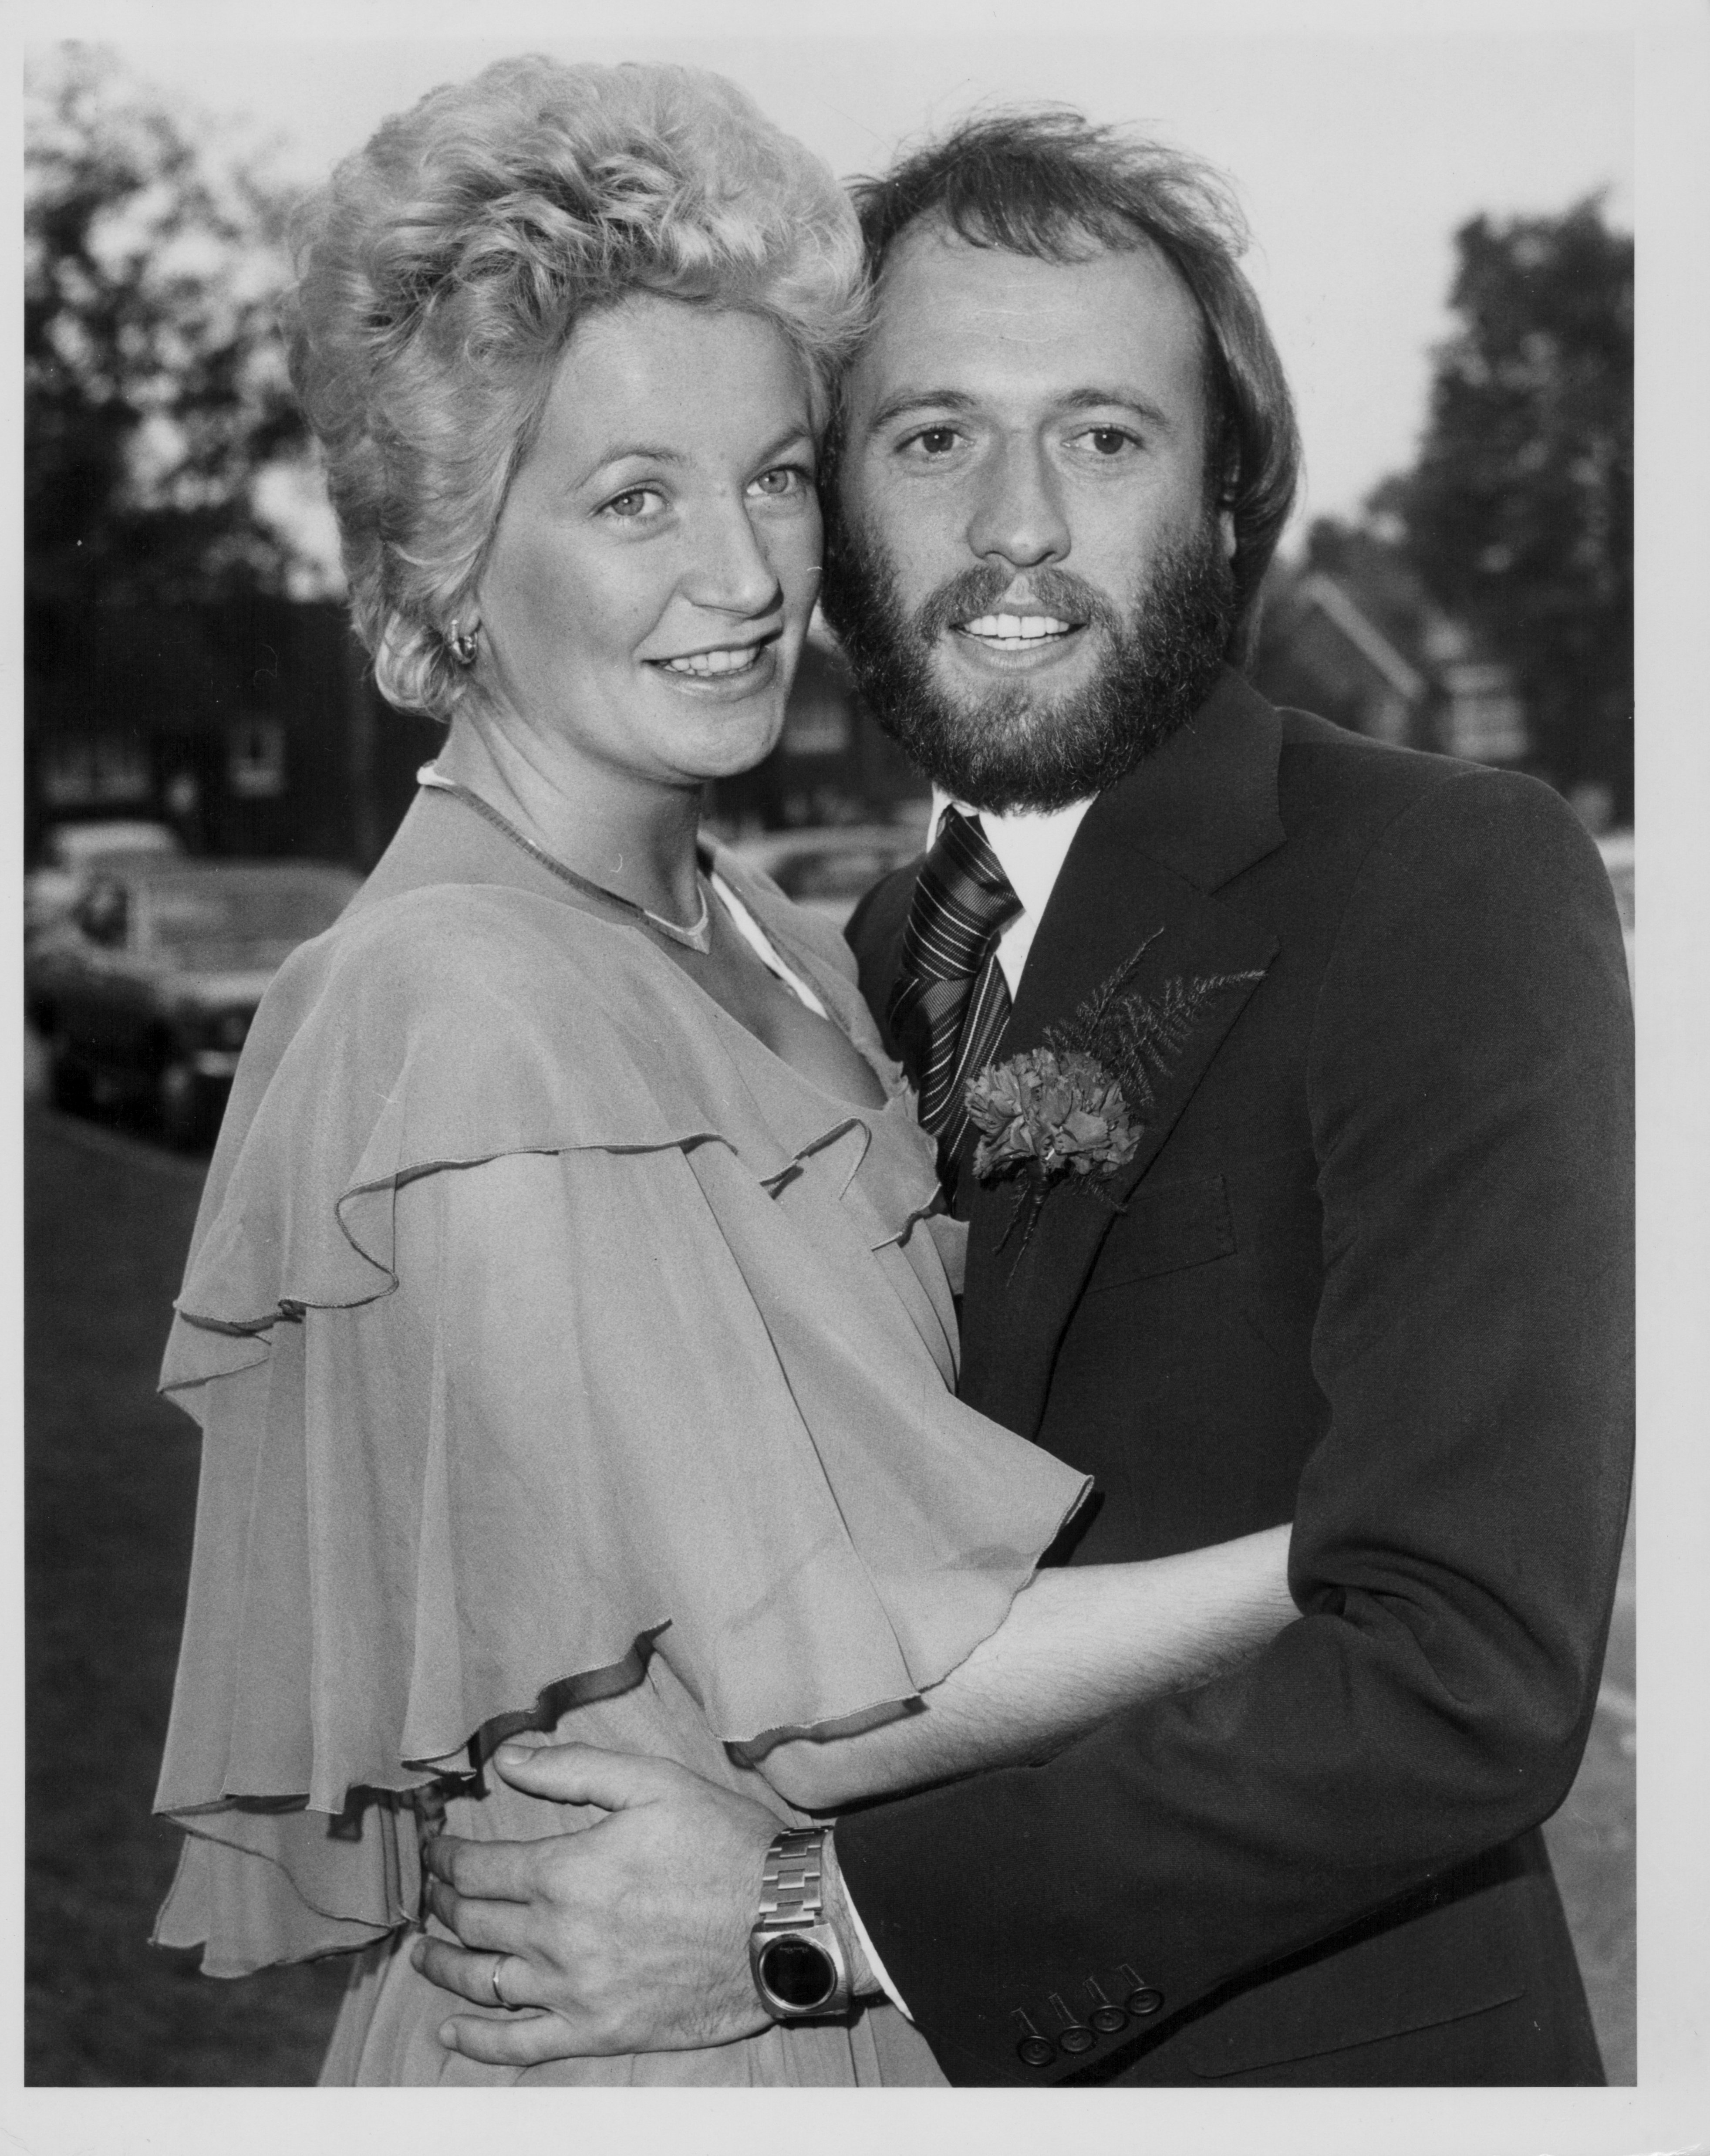 Maurice Gibb marrying Yvonne Spenceley at Haywards Heath Registry Office, Sussex, October 17th 1975.   Source: Getty Images